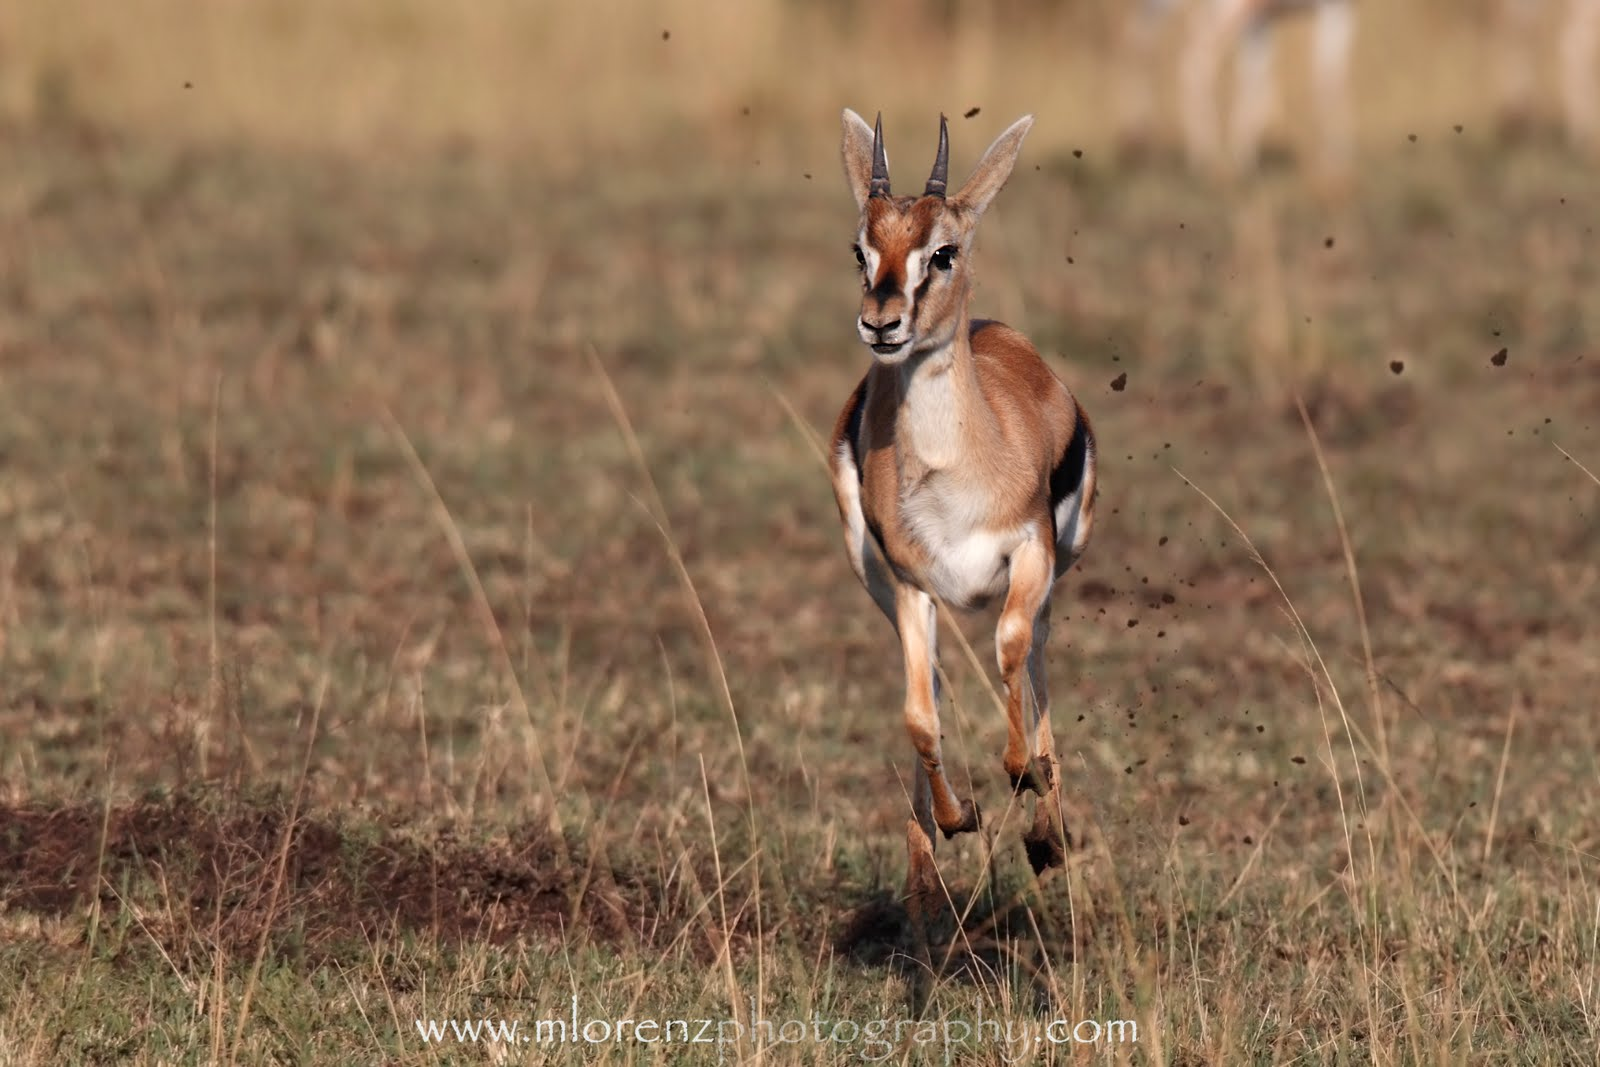 gazelle running from lion - photo #3